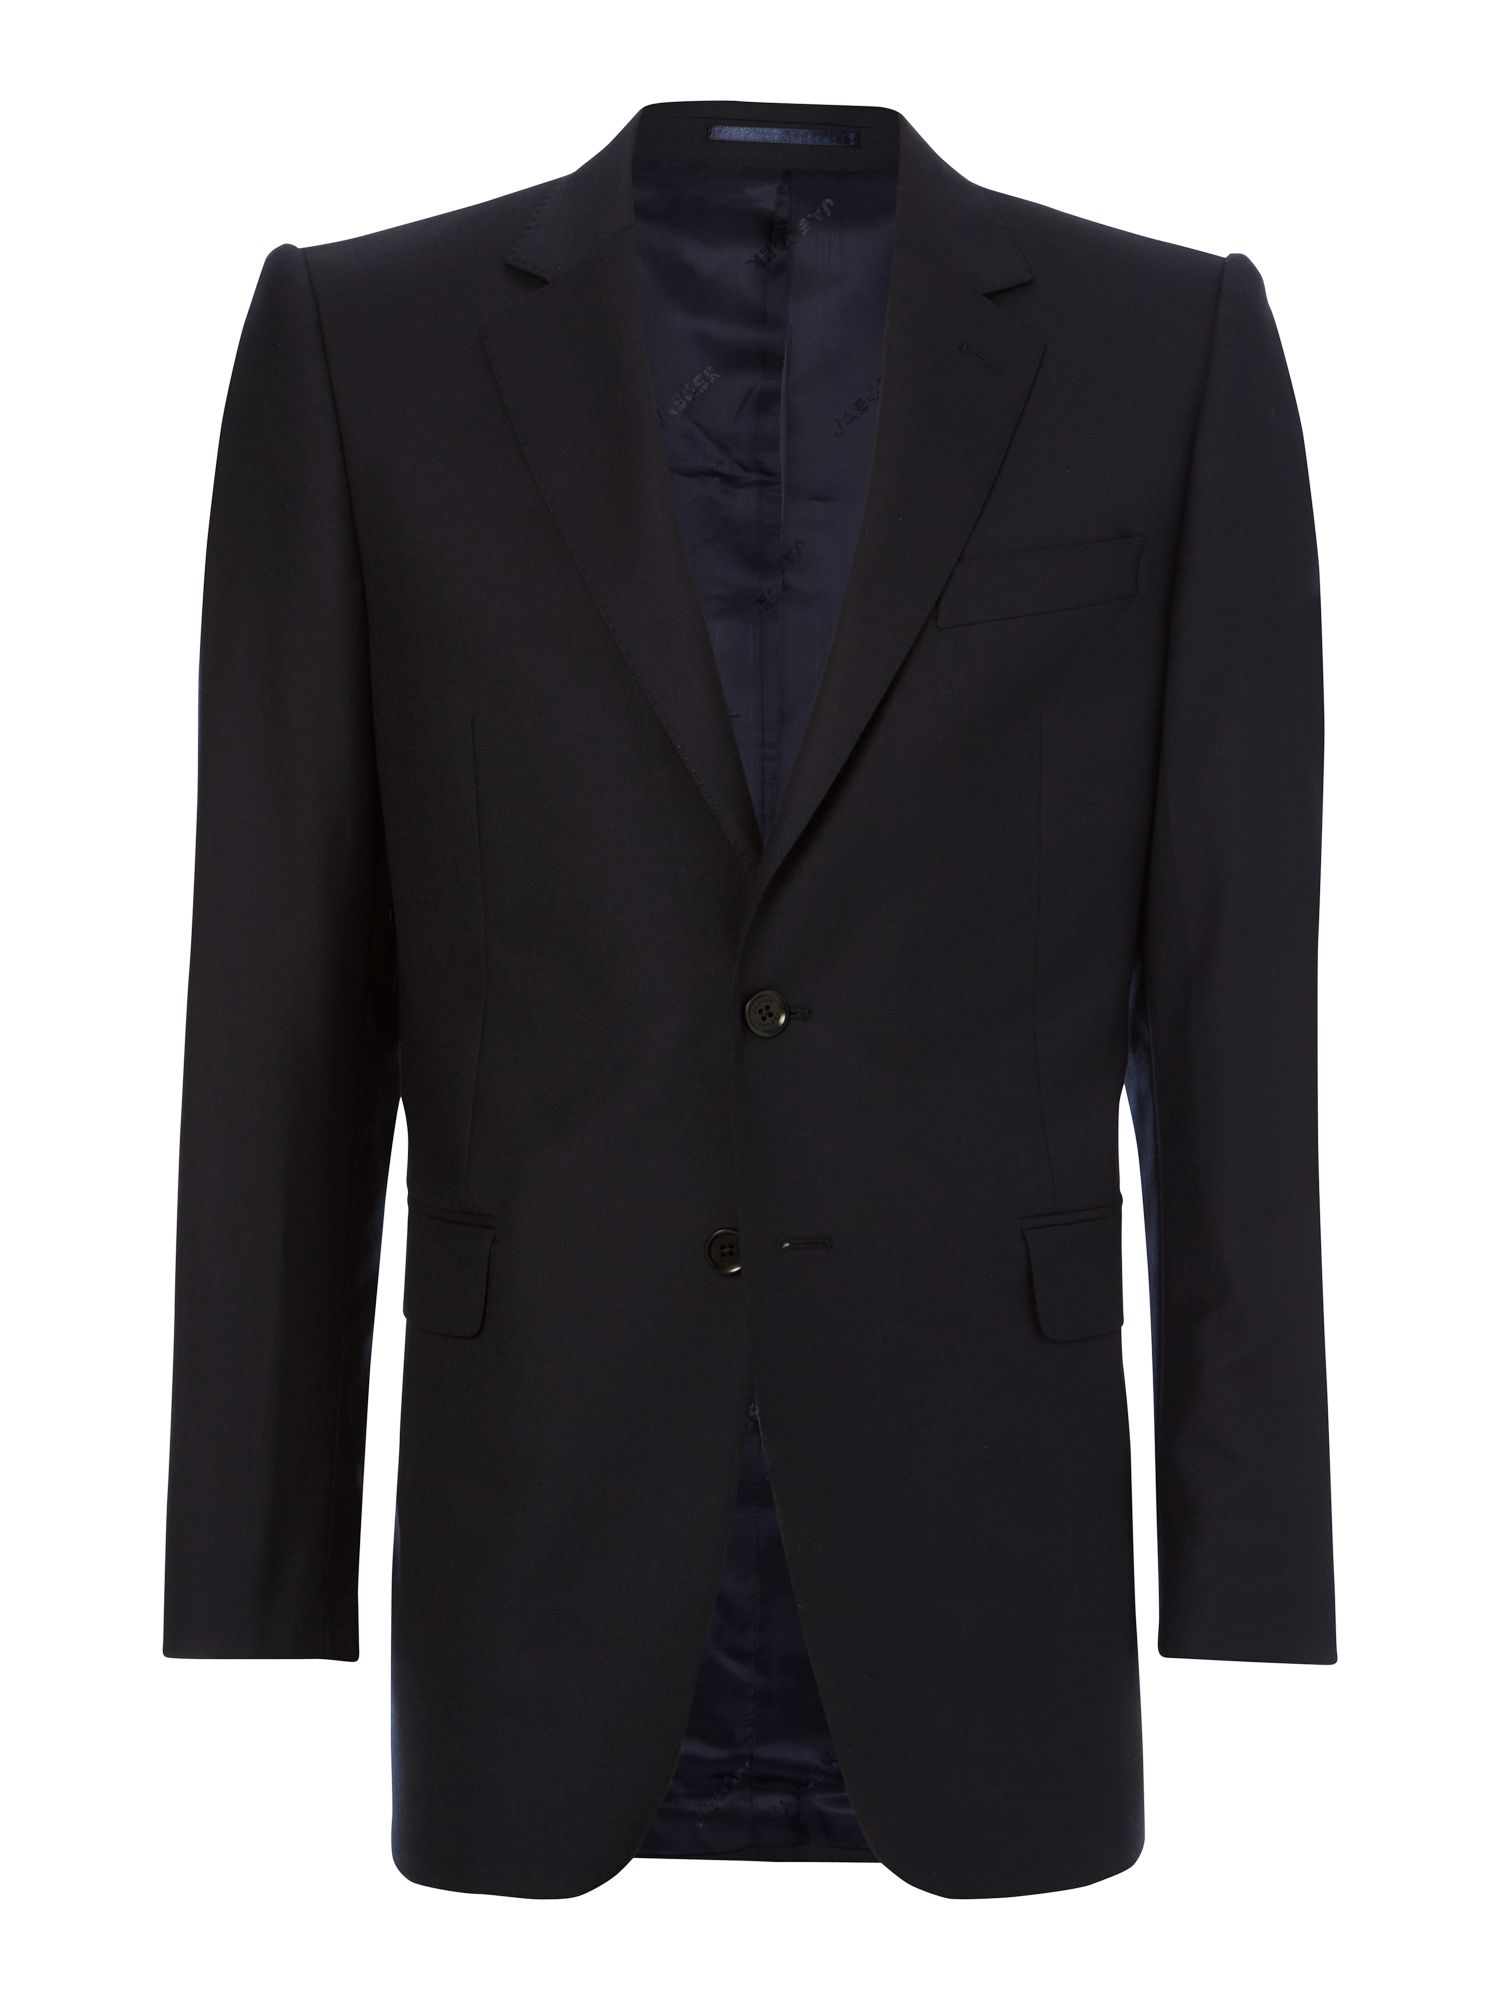 Plain twill single breasted suit jacket